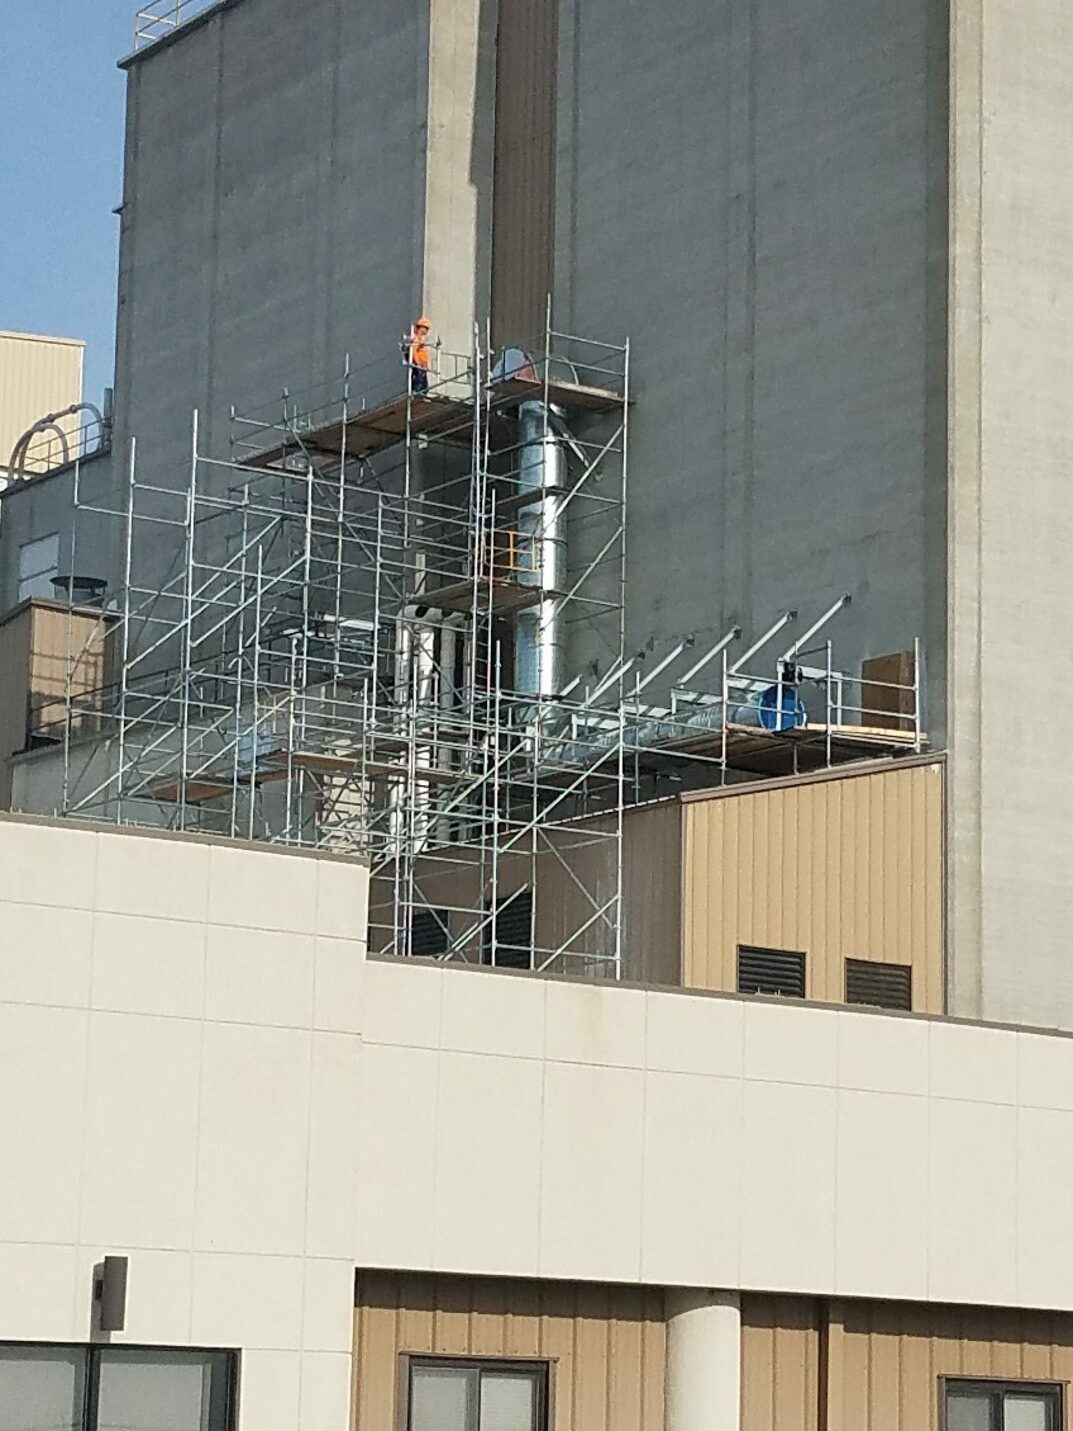 Service technician on scaffolding set up outside a building during a plant shutdown.